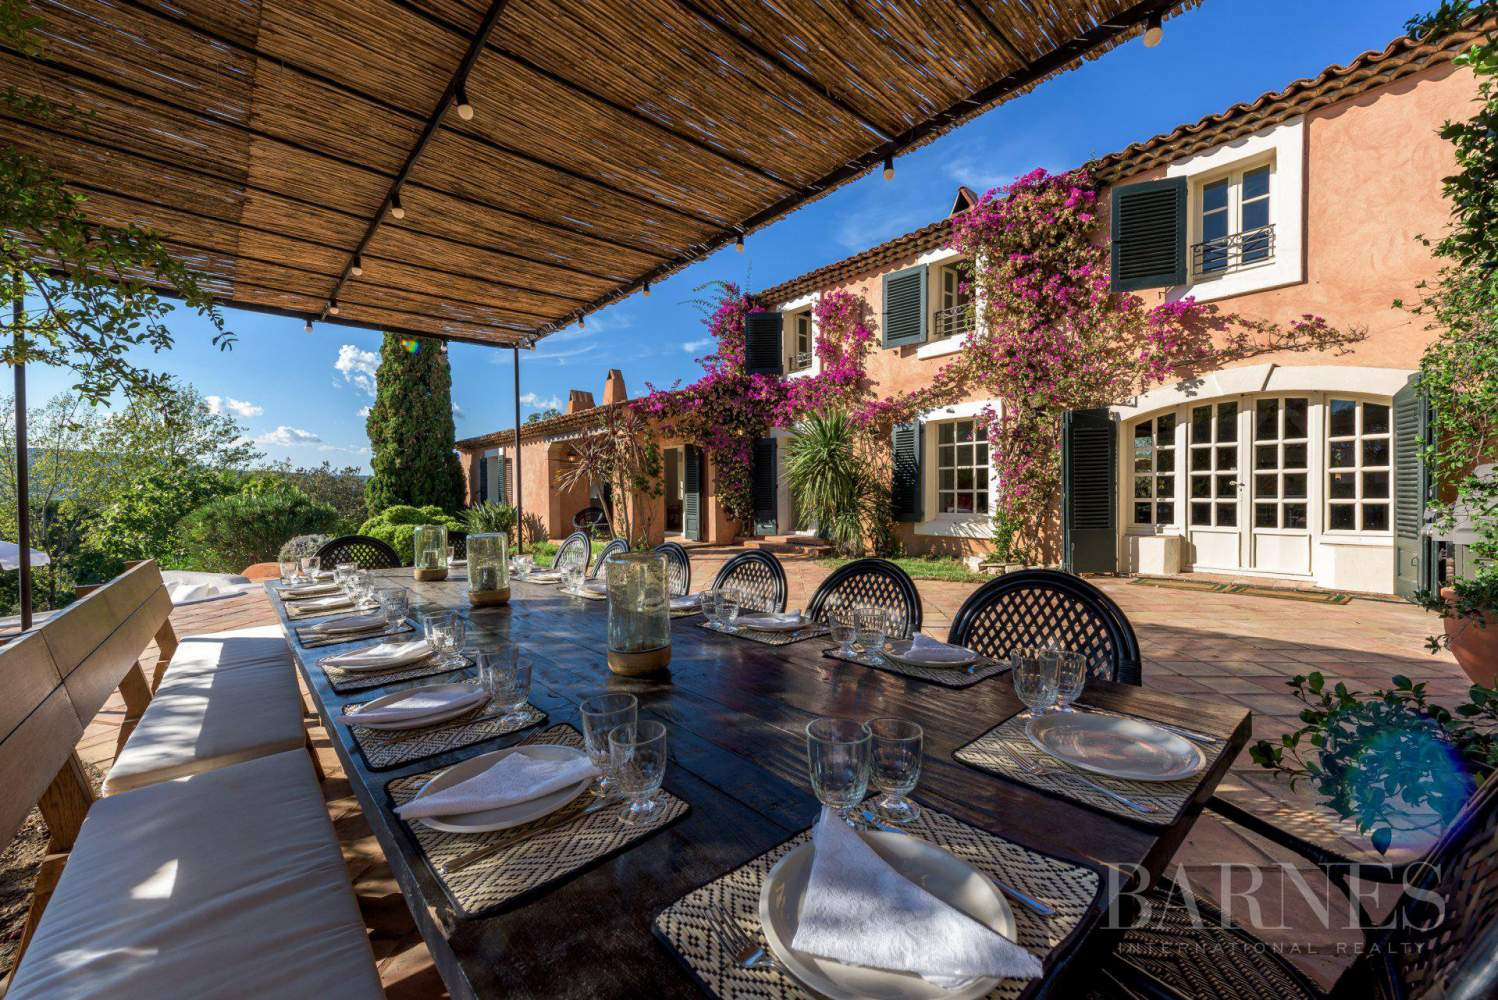 GOLFE DE SAINT-TROPEZ - LA CROIX VALMER - Beautiful Provencal house - 6 bedrooms - Pool picture 4